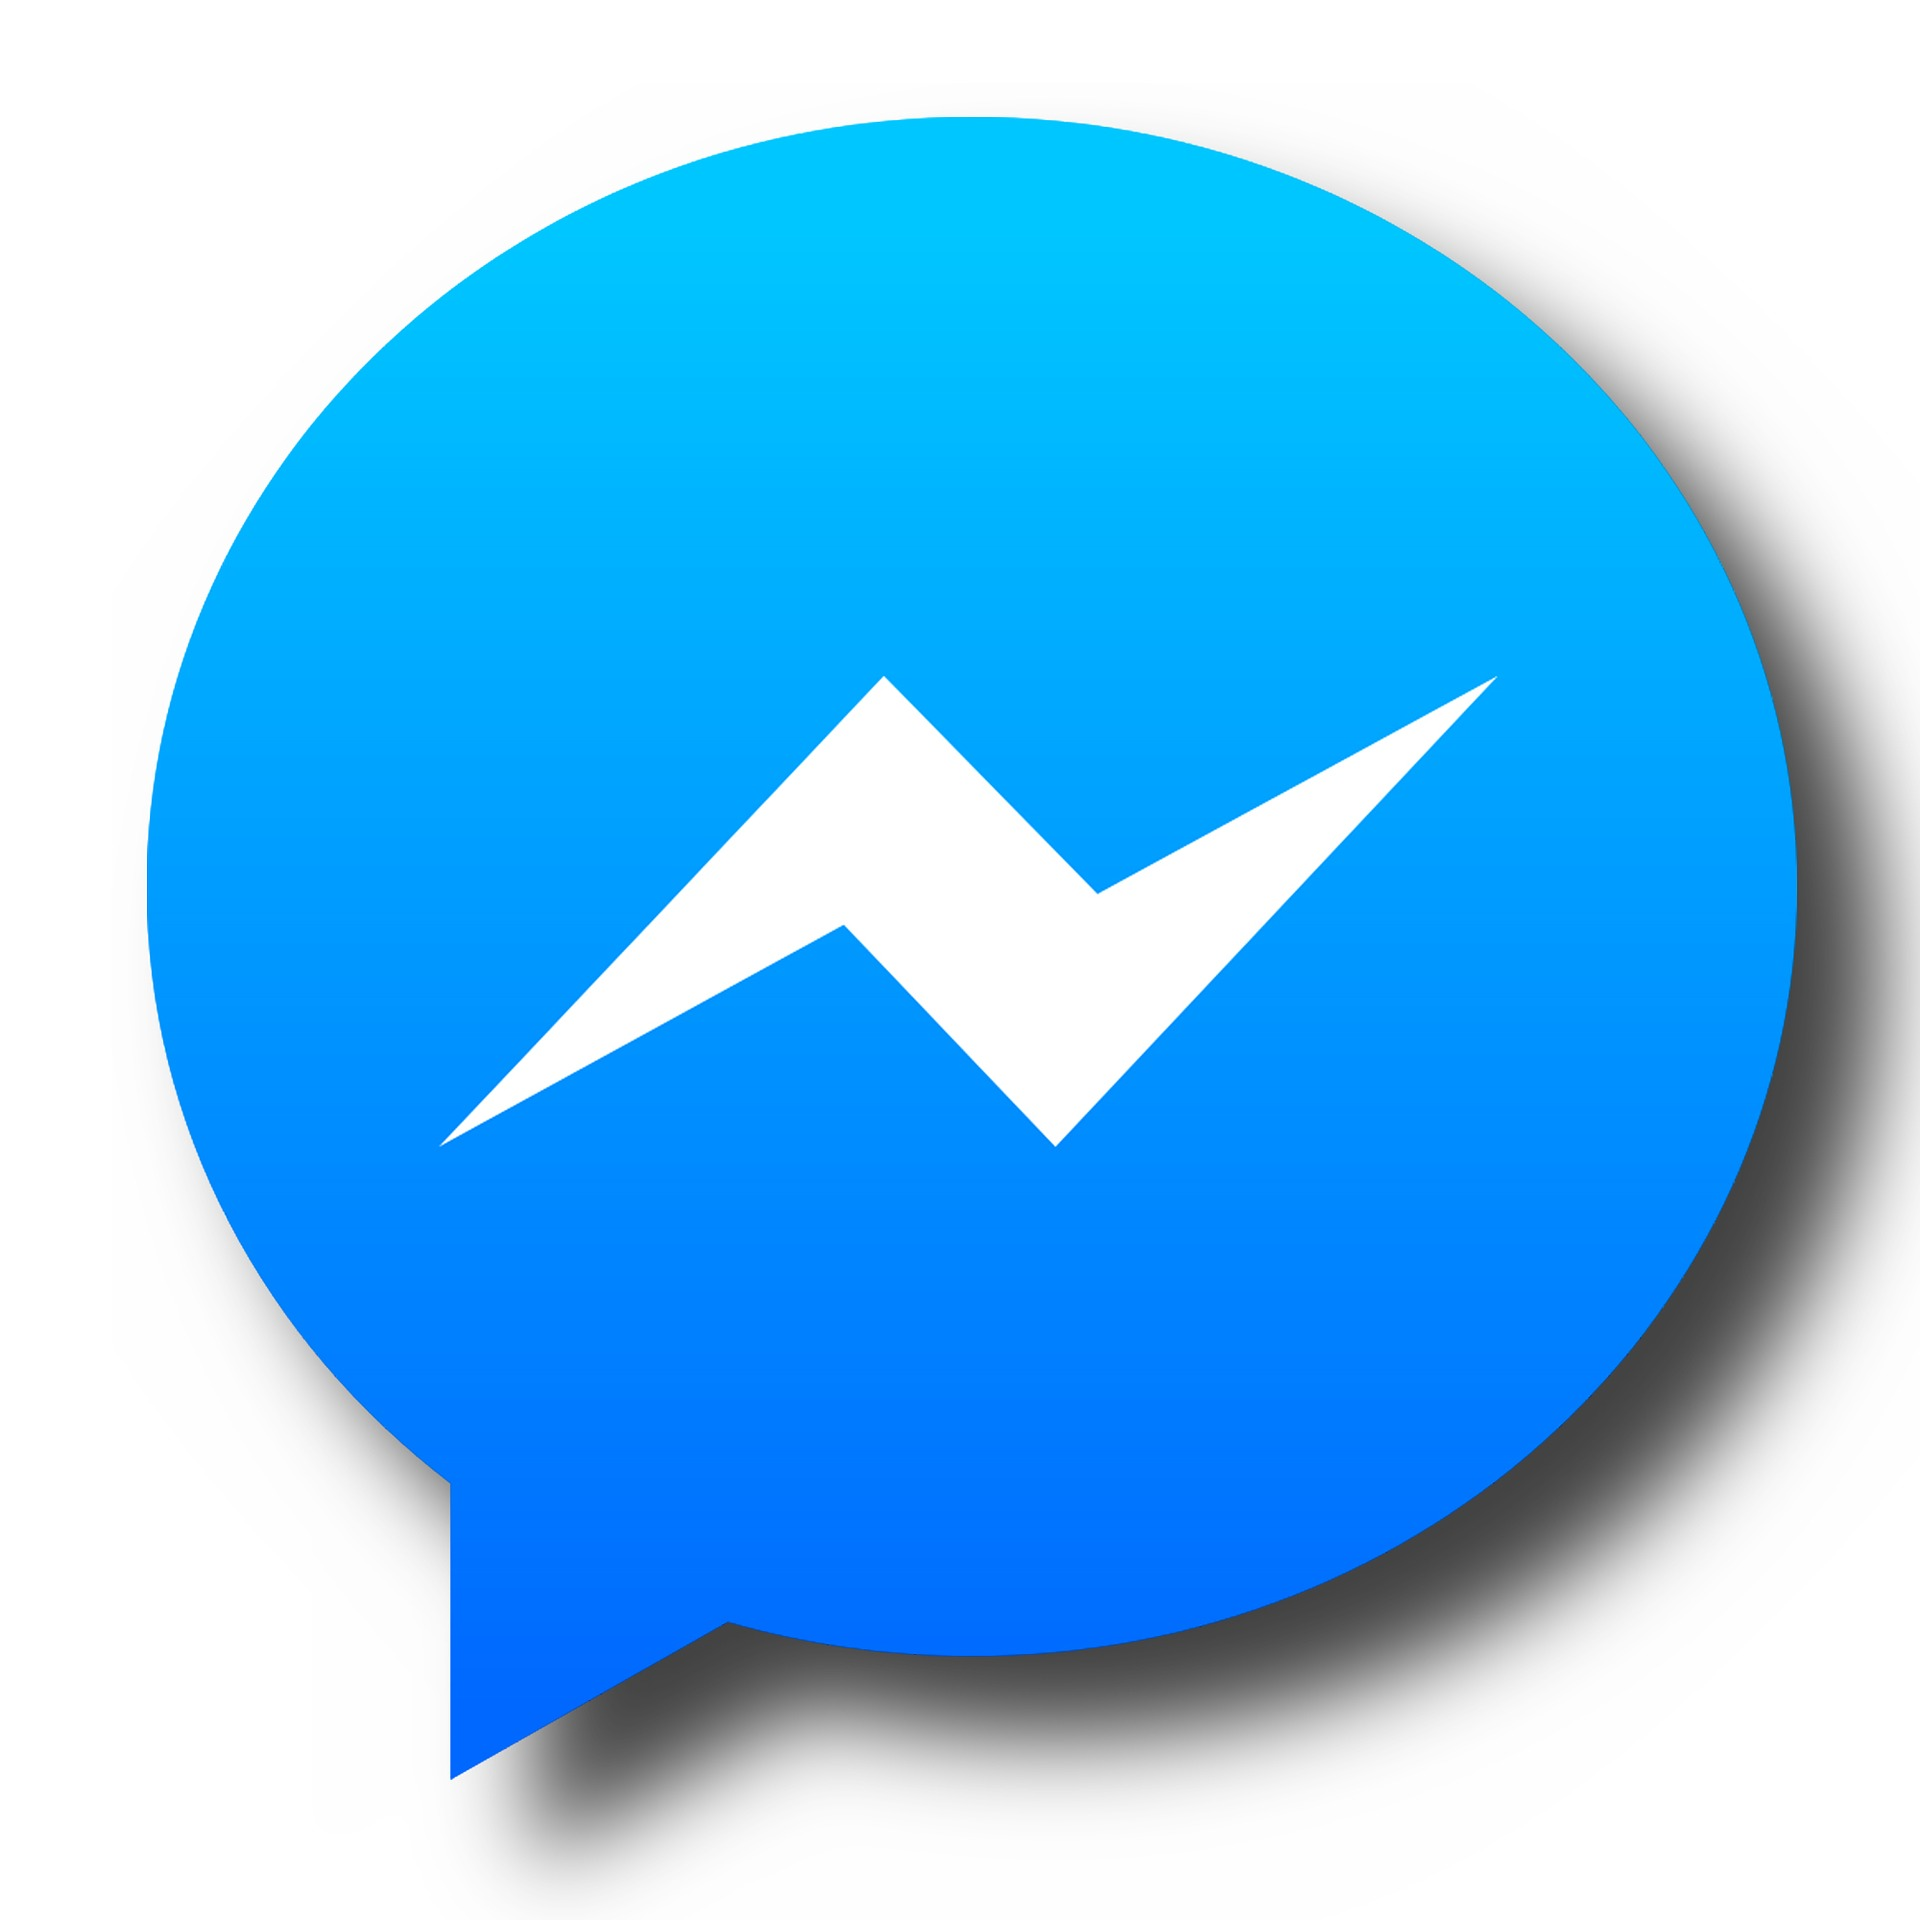 Click Messenger icon to chat